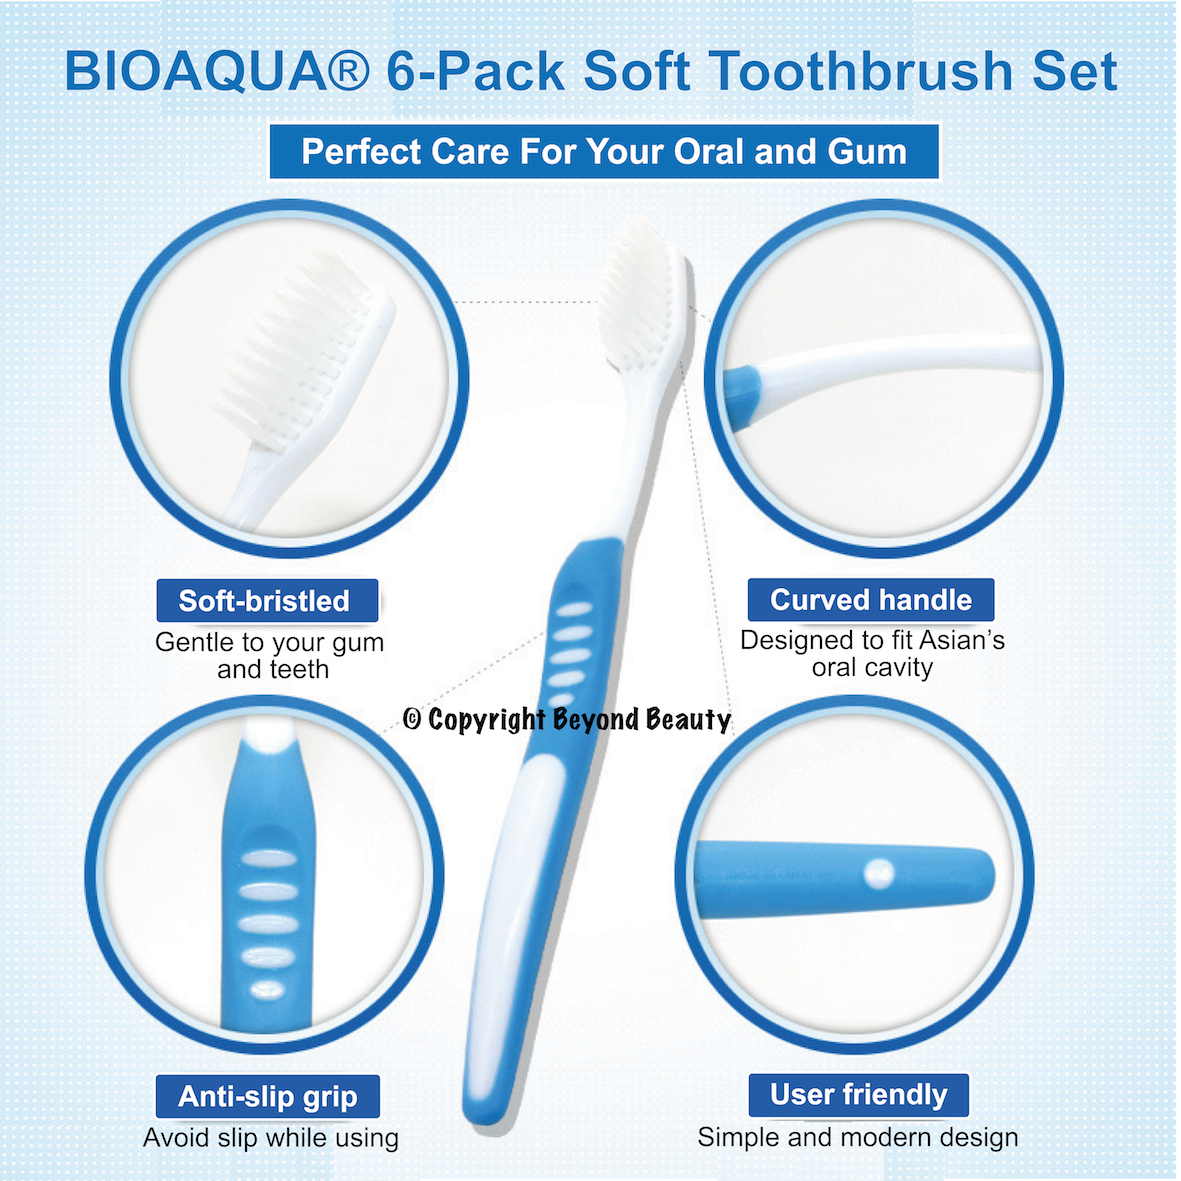 [VALUE BUY] BIOAQUA 6-Pack Soft Toothbrush Set